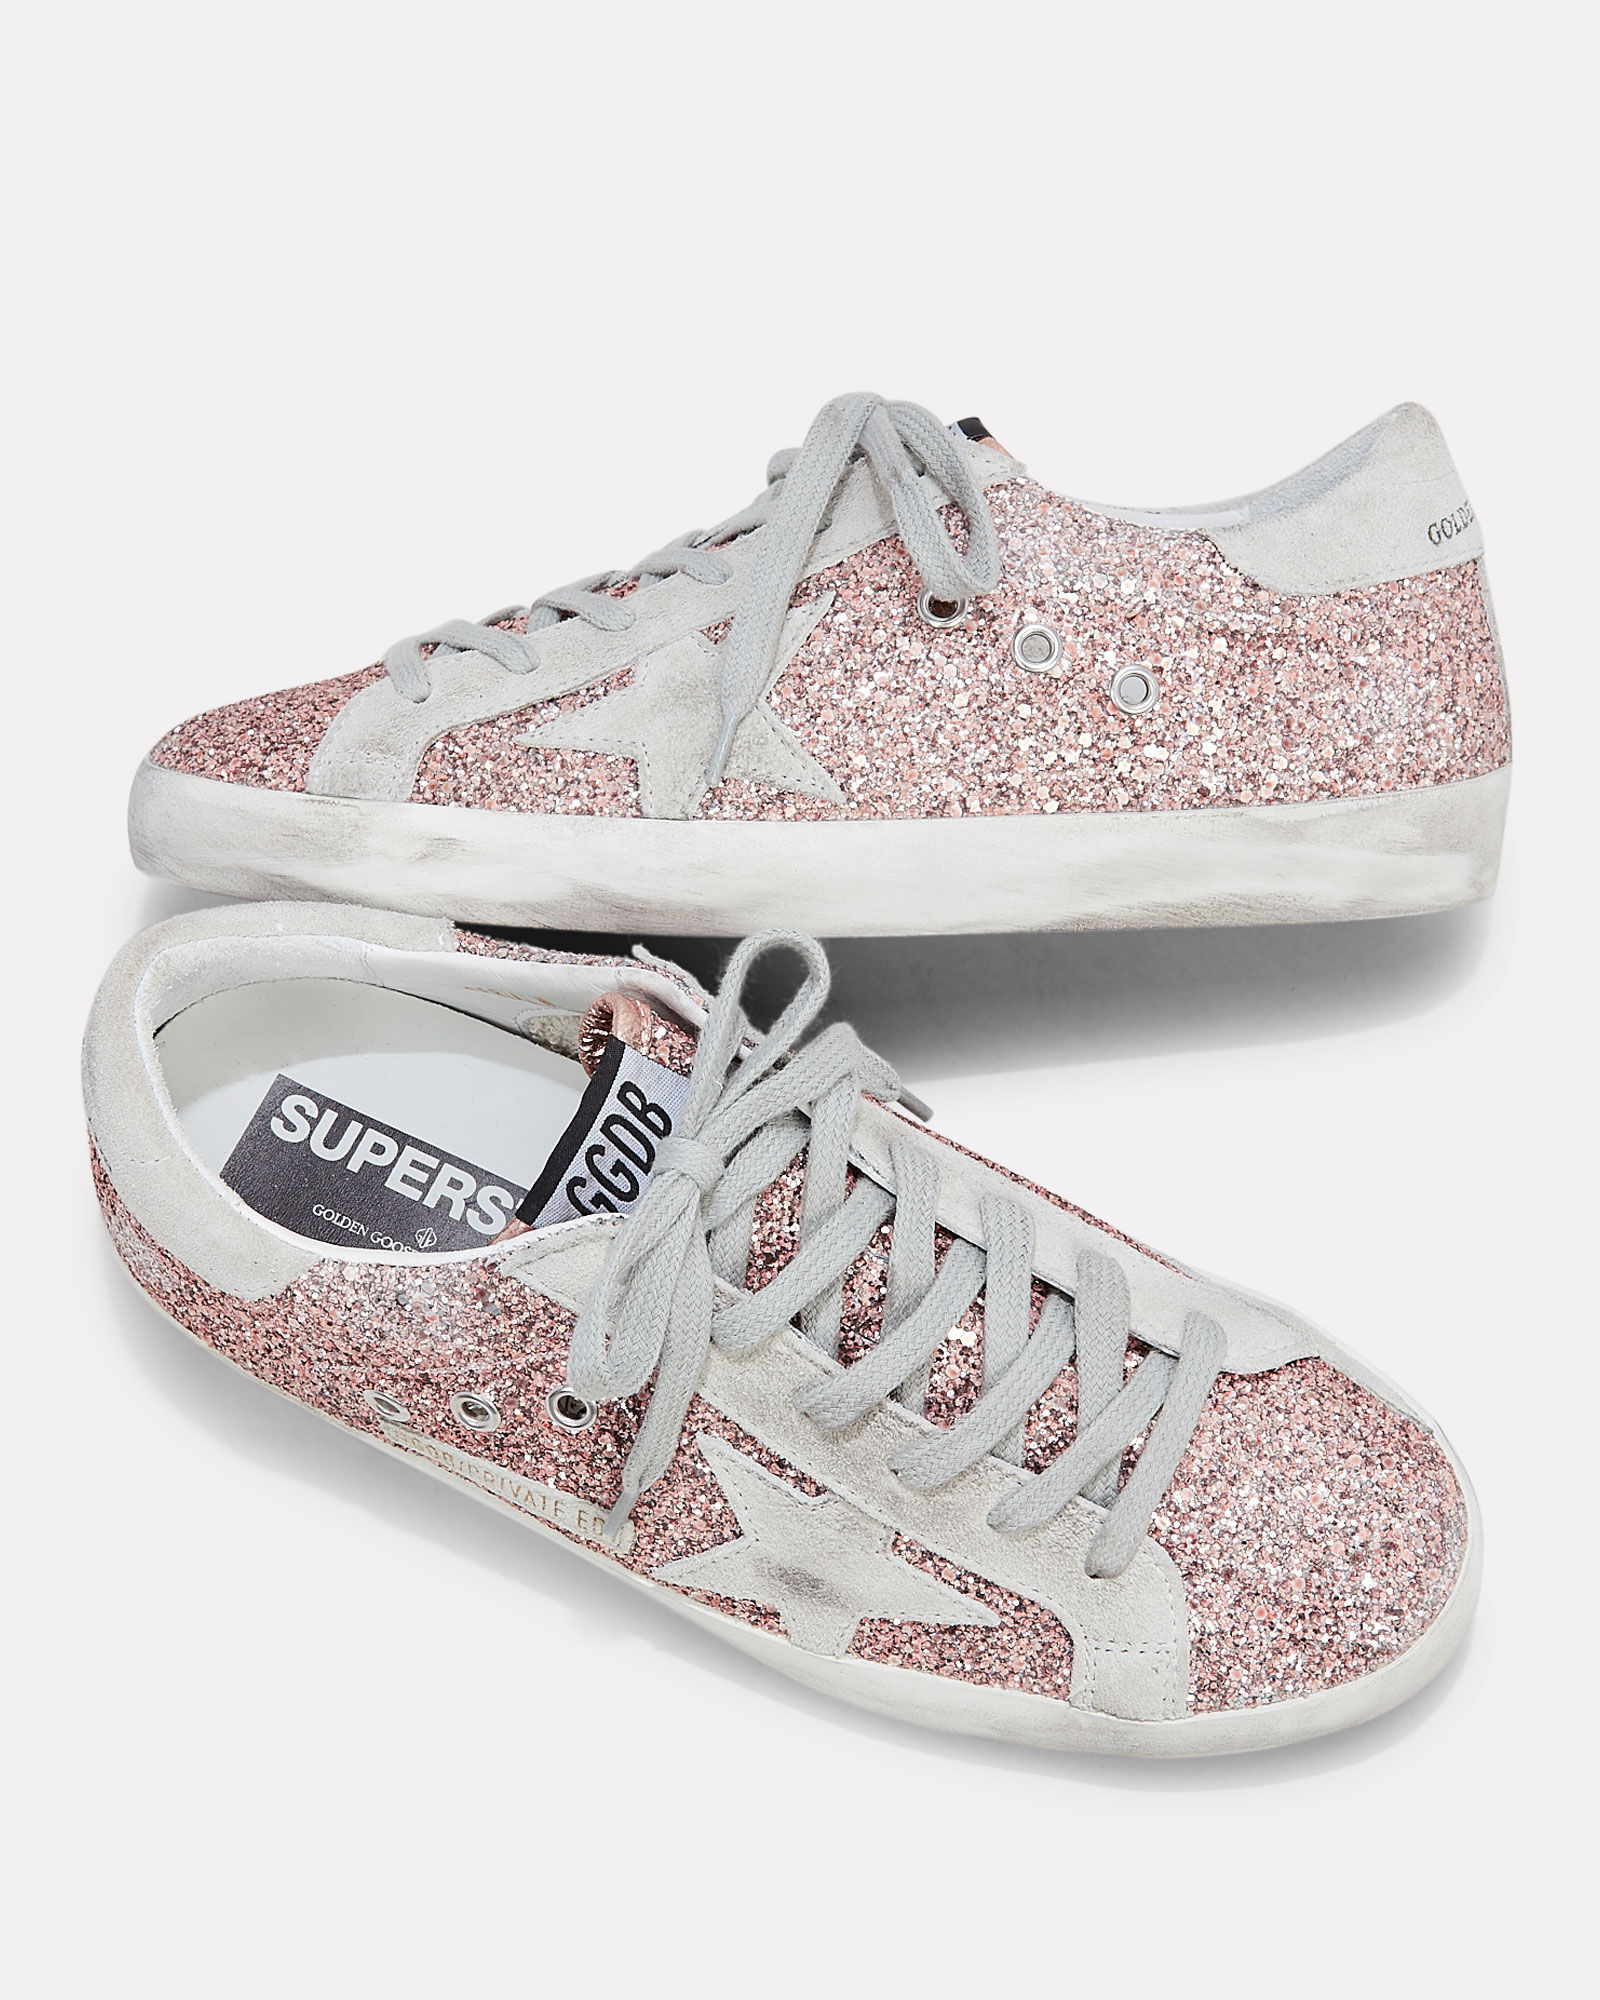 Superstar Rose Gold Glitter Sneakers, GOLD, hi-res